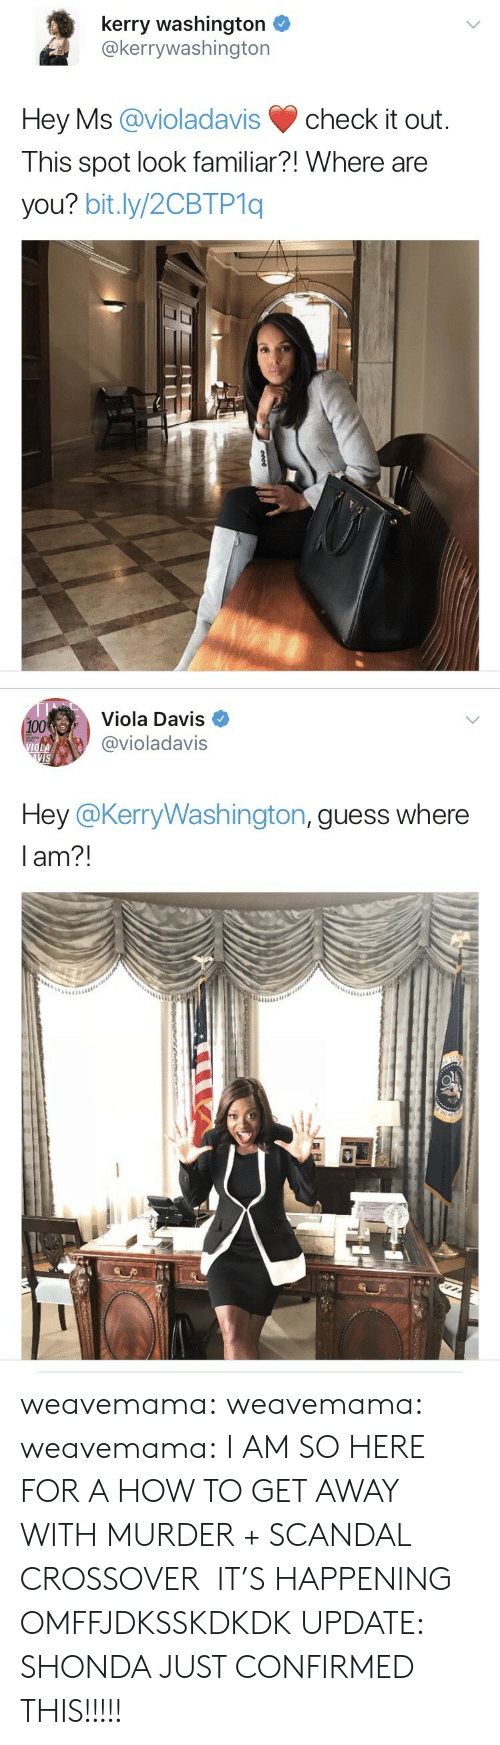 viola: kerry washington  @kerrywashington  Hey Ms @violadavis check it out  I his spot look familiar?! Where are  you? bit.ly/2CBTP1q   Viola Davis  @violadavis  100  VIS  Hey @KerryWashington, quess where  lam?! weavemama: weavemama:  weavemama:  I AM SO HERE FOR A HOW TO GET AWAY WITH MURDER + SCANDAL CROSSOVER  IT'S HAPPENING OMFFJDKSSKDKDK  UPDATE: SHONDA JUST CONFIRMED THIS!!!!!